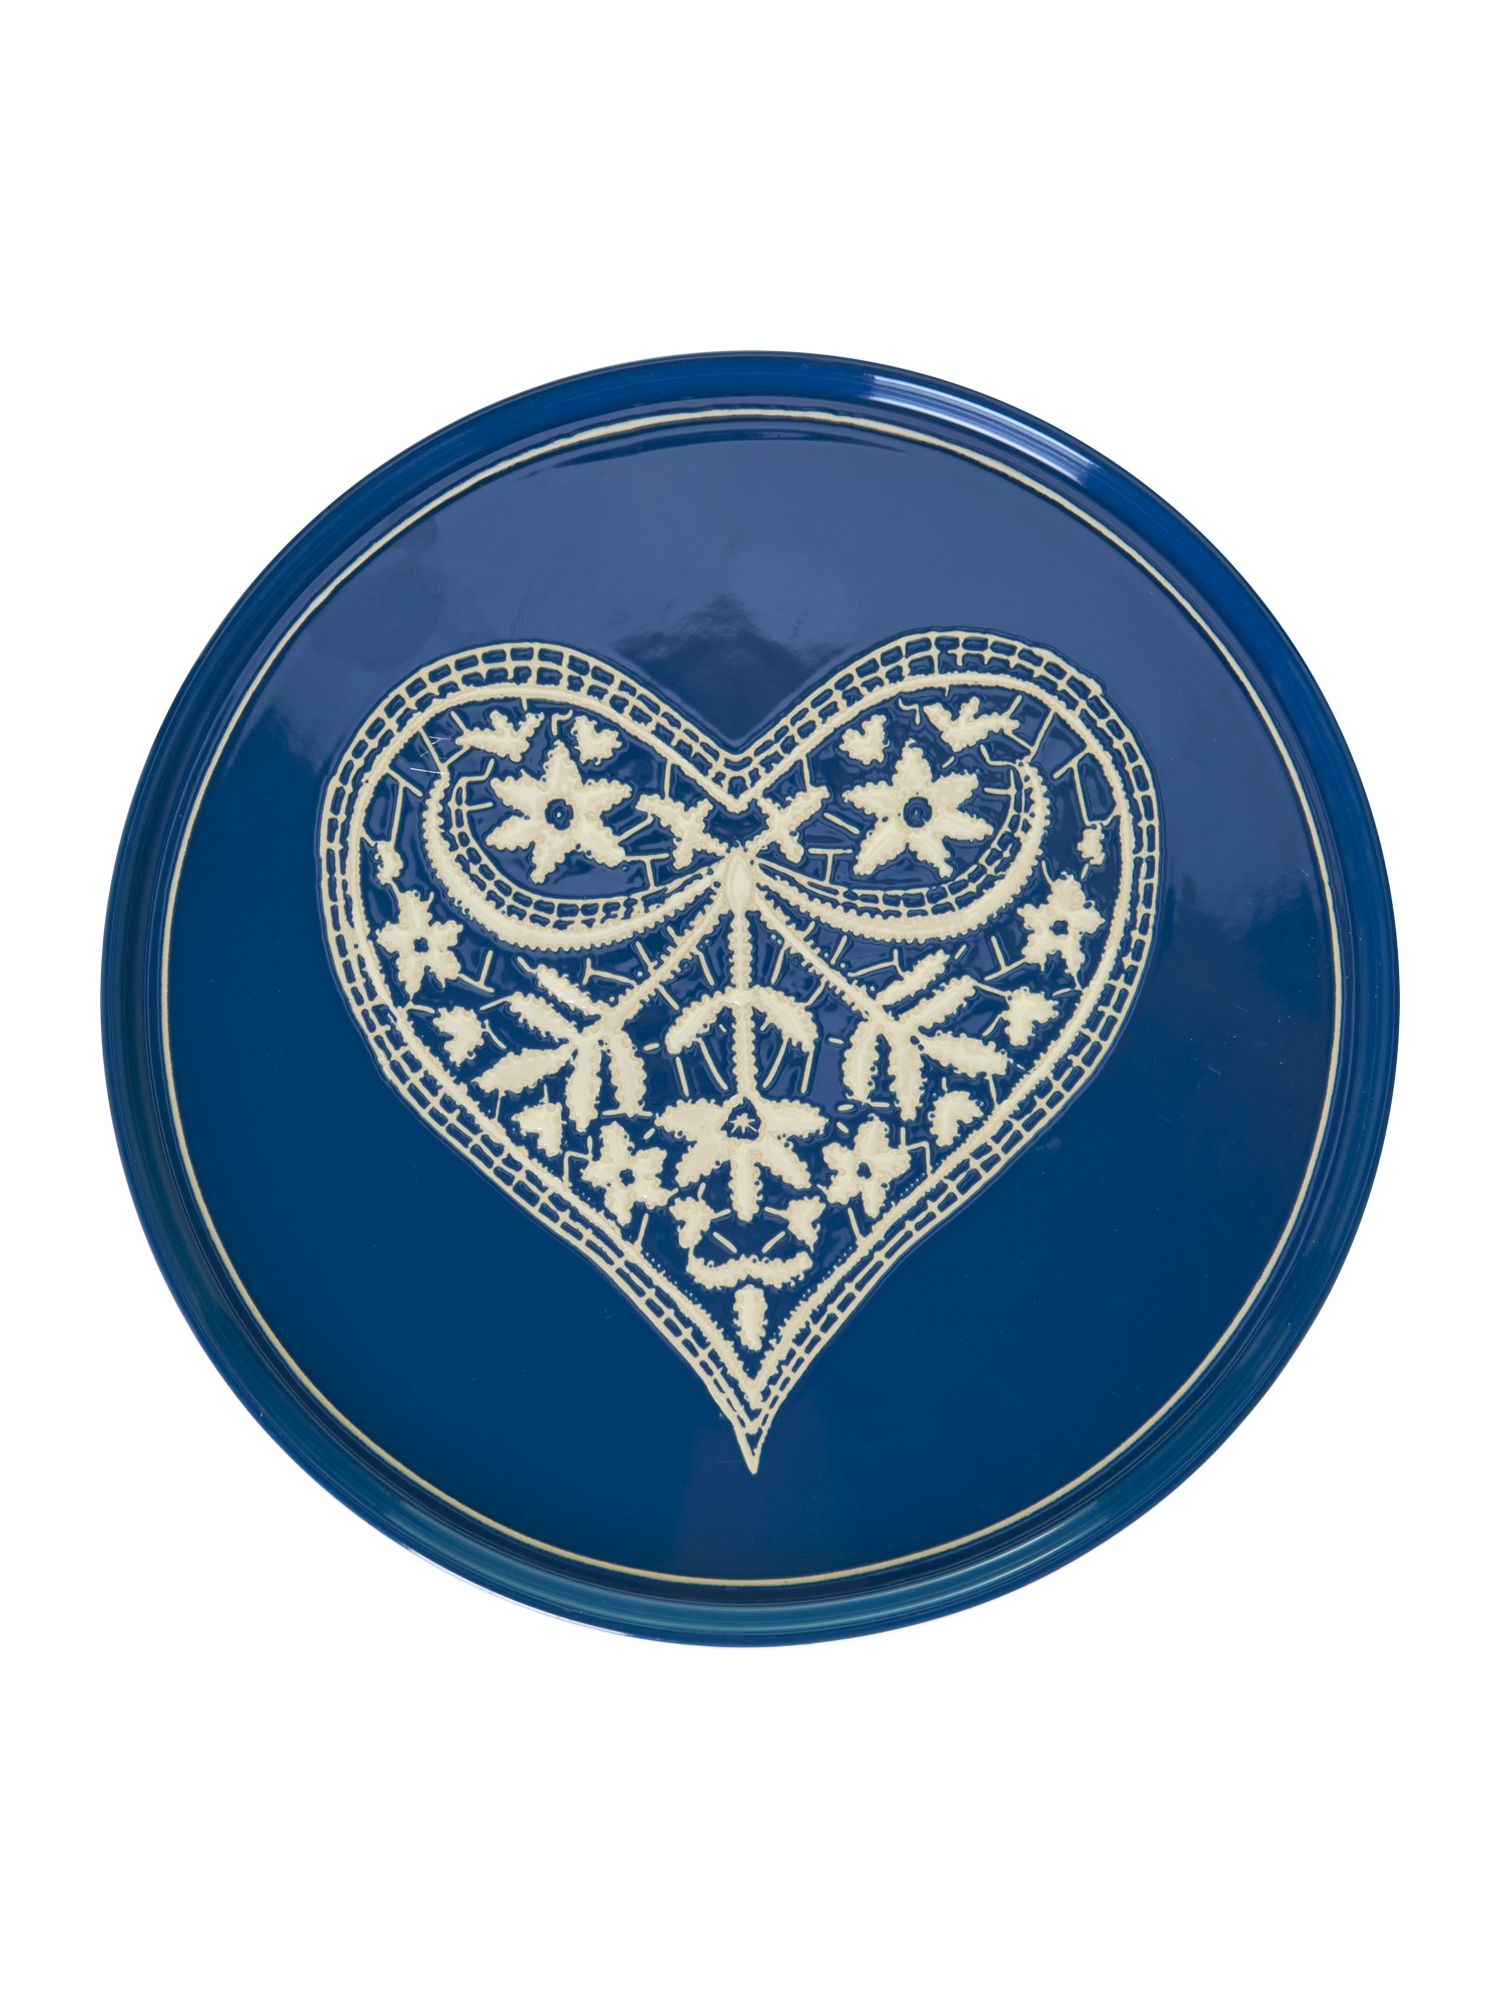 Jan constantine breakfast plate blue